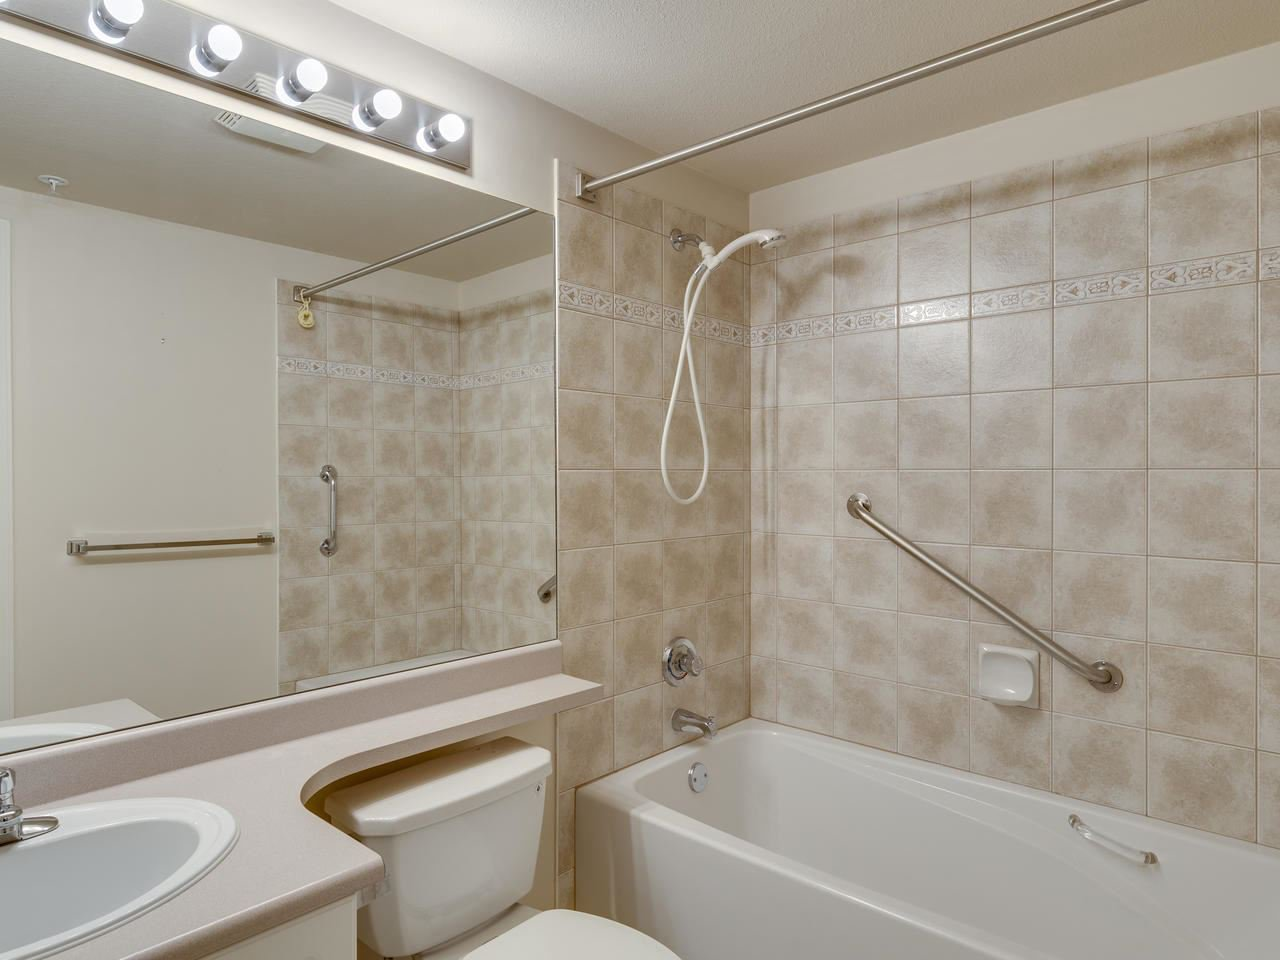 """Photo 25: Photos: 404 12148 224 Street in Maple Ridge: East Central Condo for sale in """"Panorama"""" : MLS®# R2461995"""